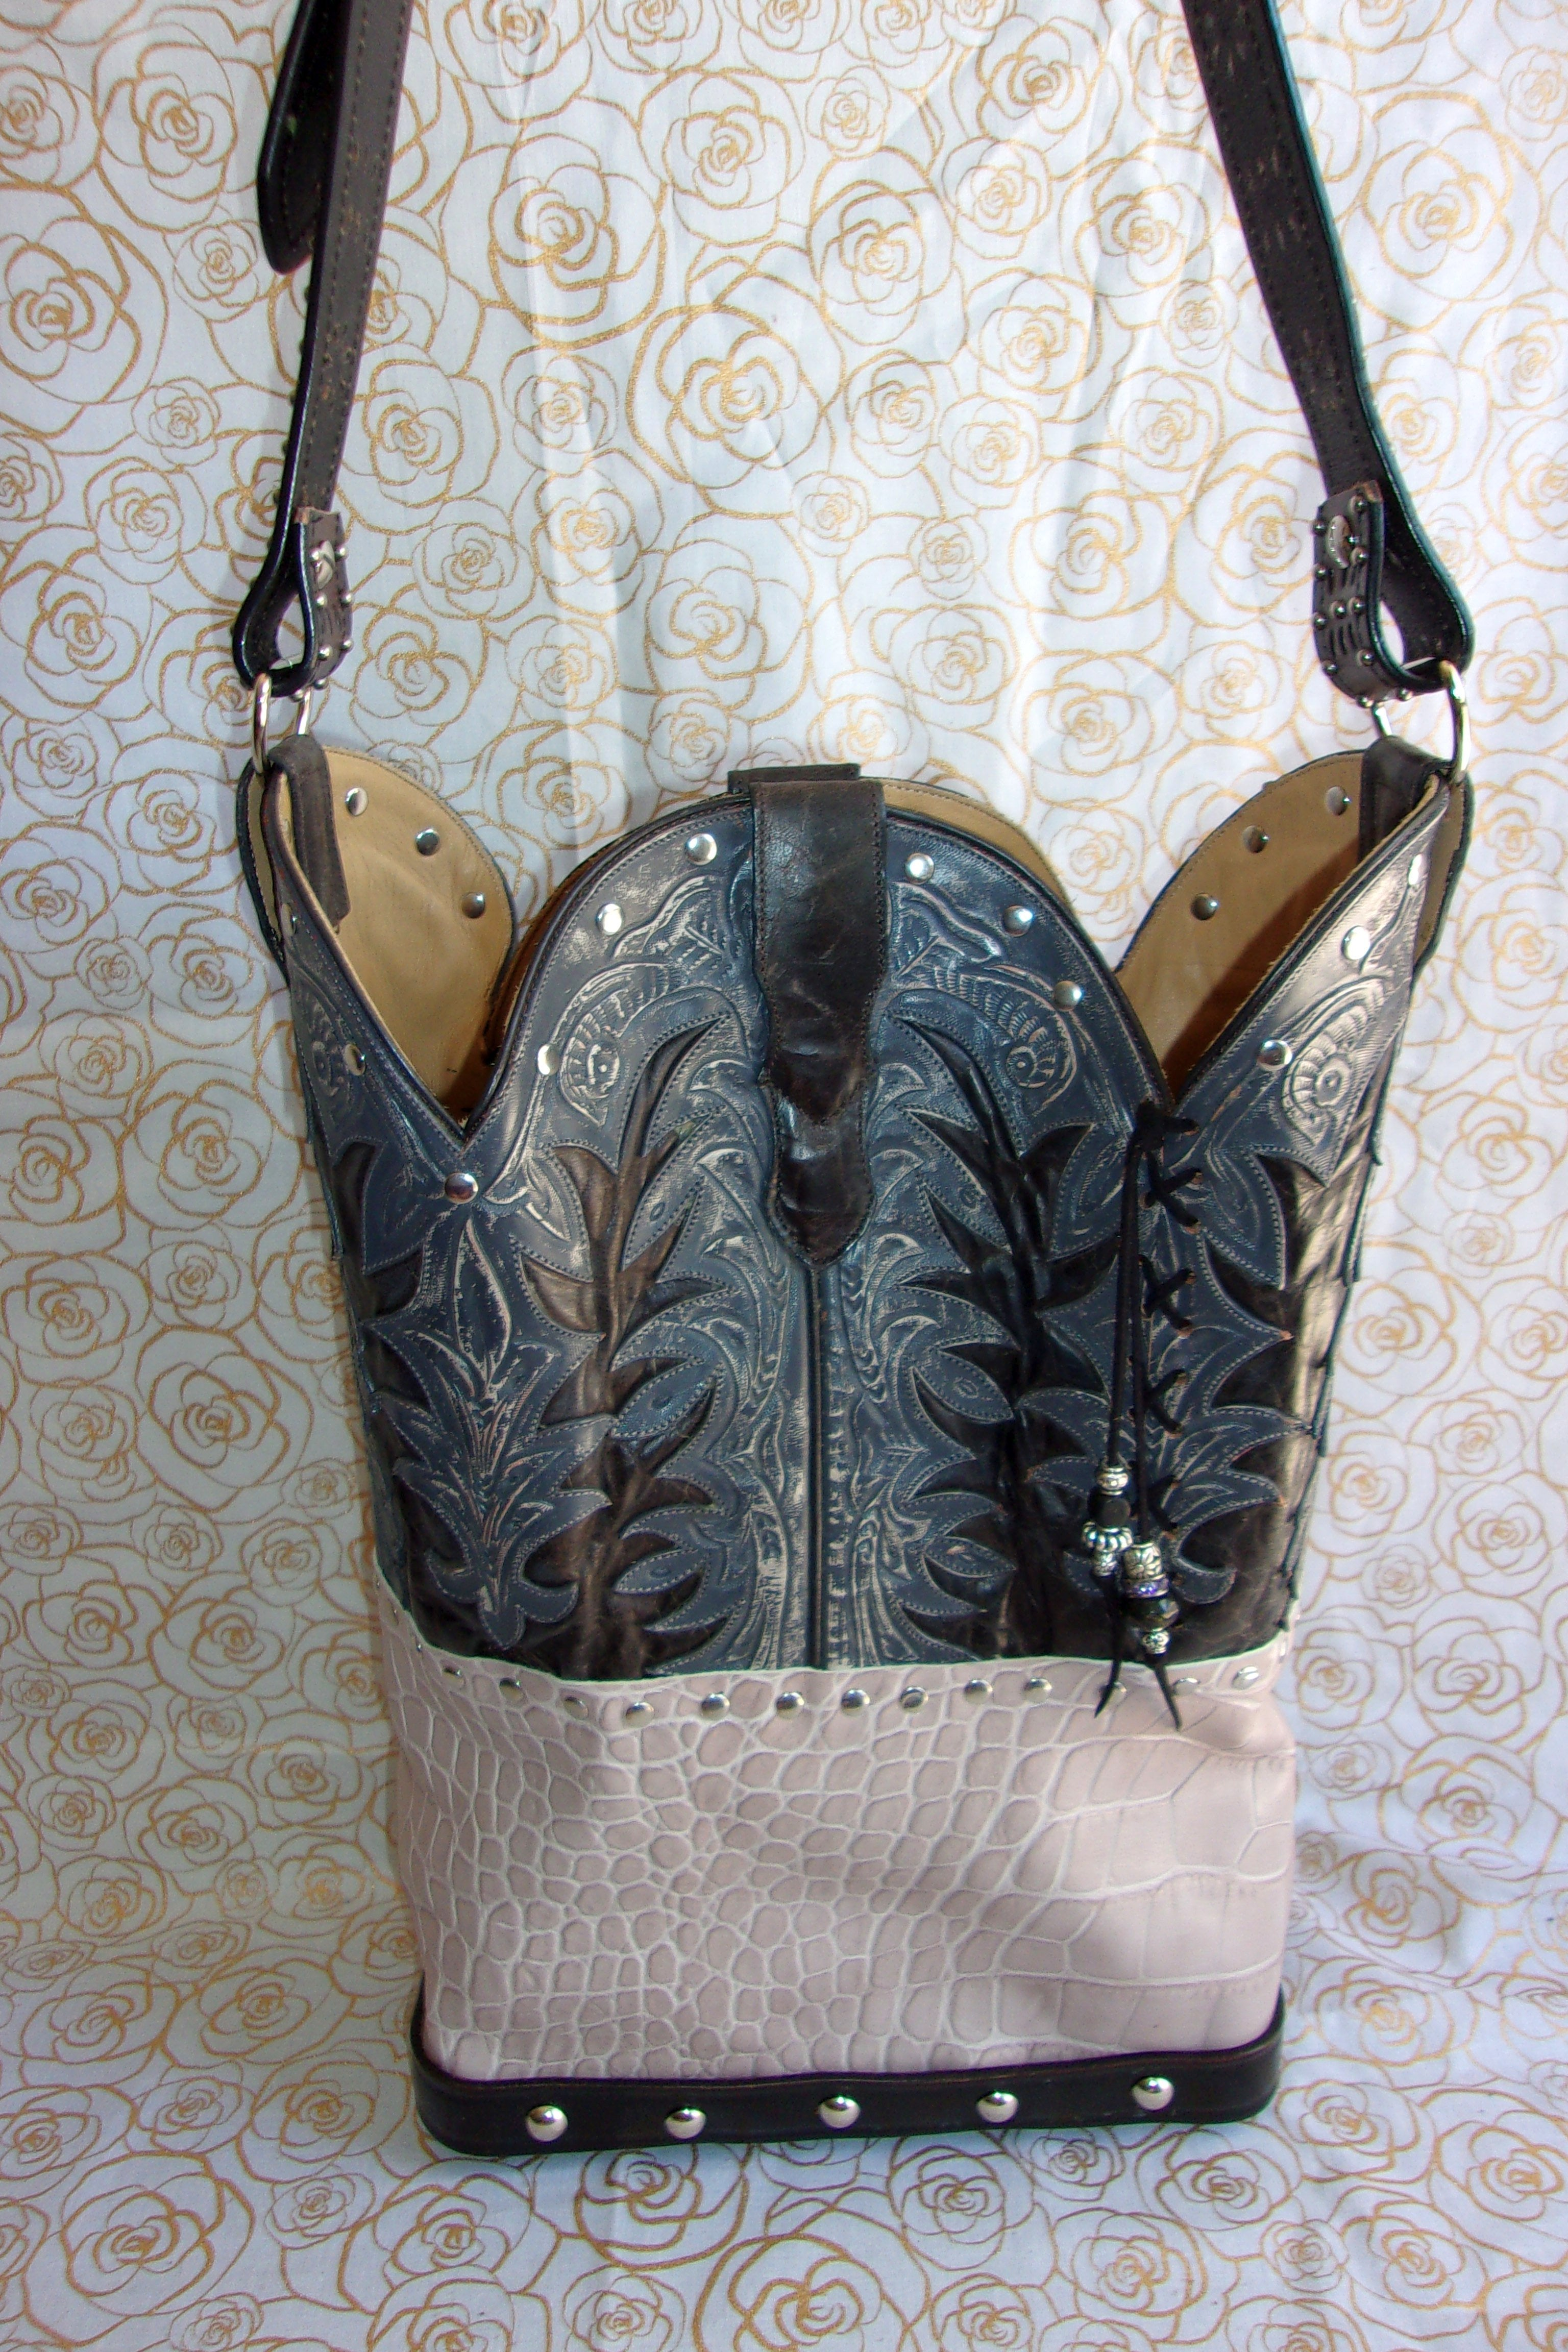 Hair on Hide Heart Shoulder Bag TS266 - Unique Leather Handbags and Totes by Chris Thompson